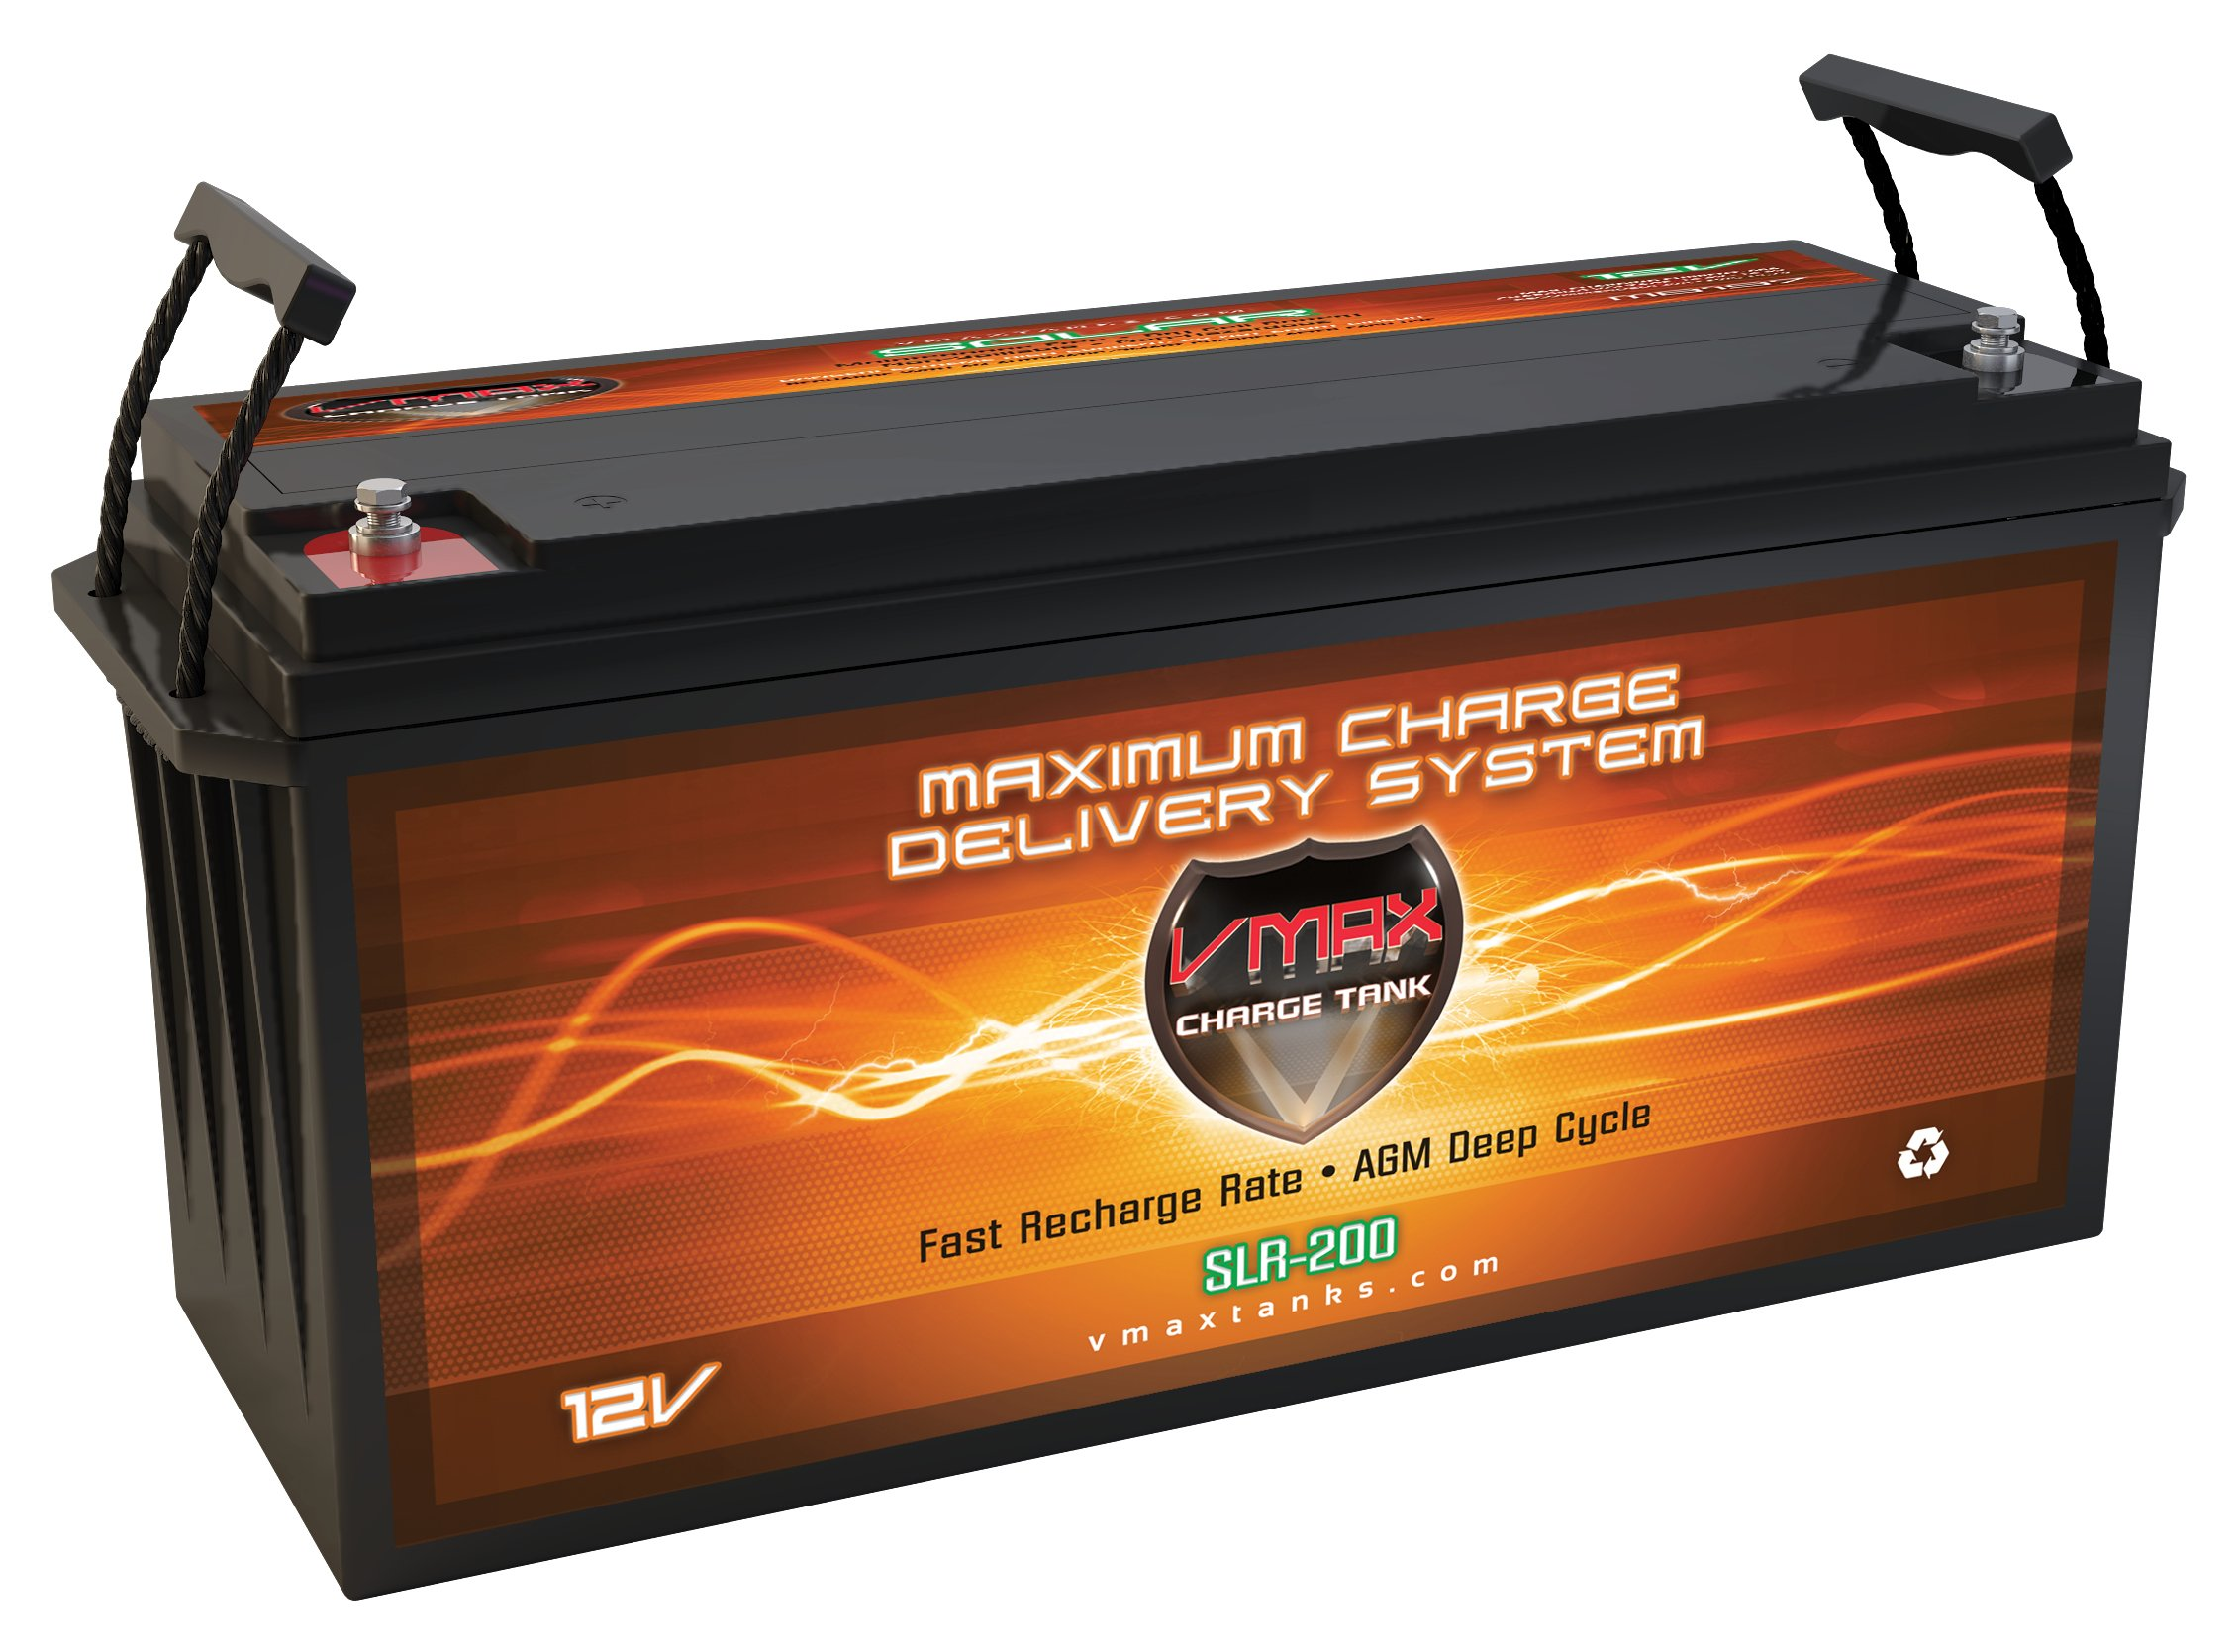 Vmaxtanks VMAXSLR175 AGM deep cycle 12V 175AH Rechargeable battery for Use with PV Solar Panel wind turbine gas or electric power backup generator or smart charger for off grid sump pump lift winch pallet jack and any other heavy duty application by VMAX Solar